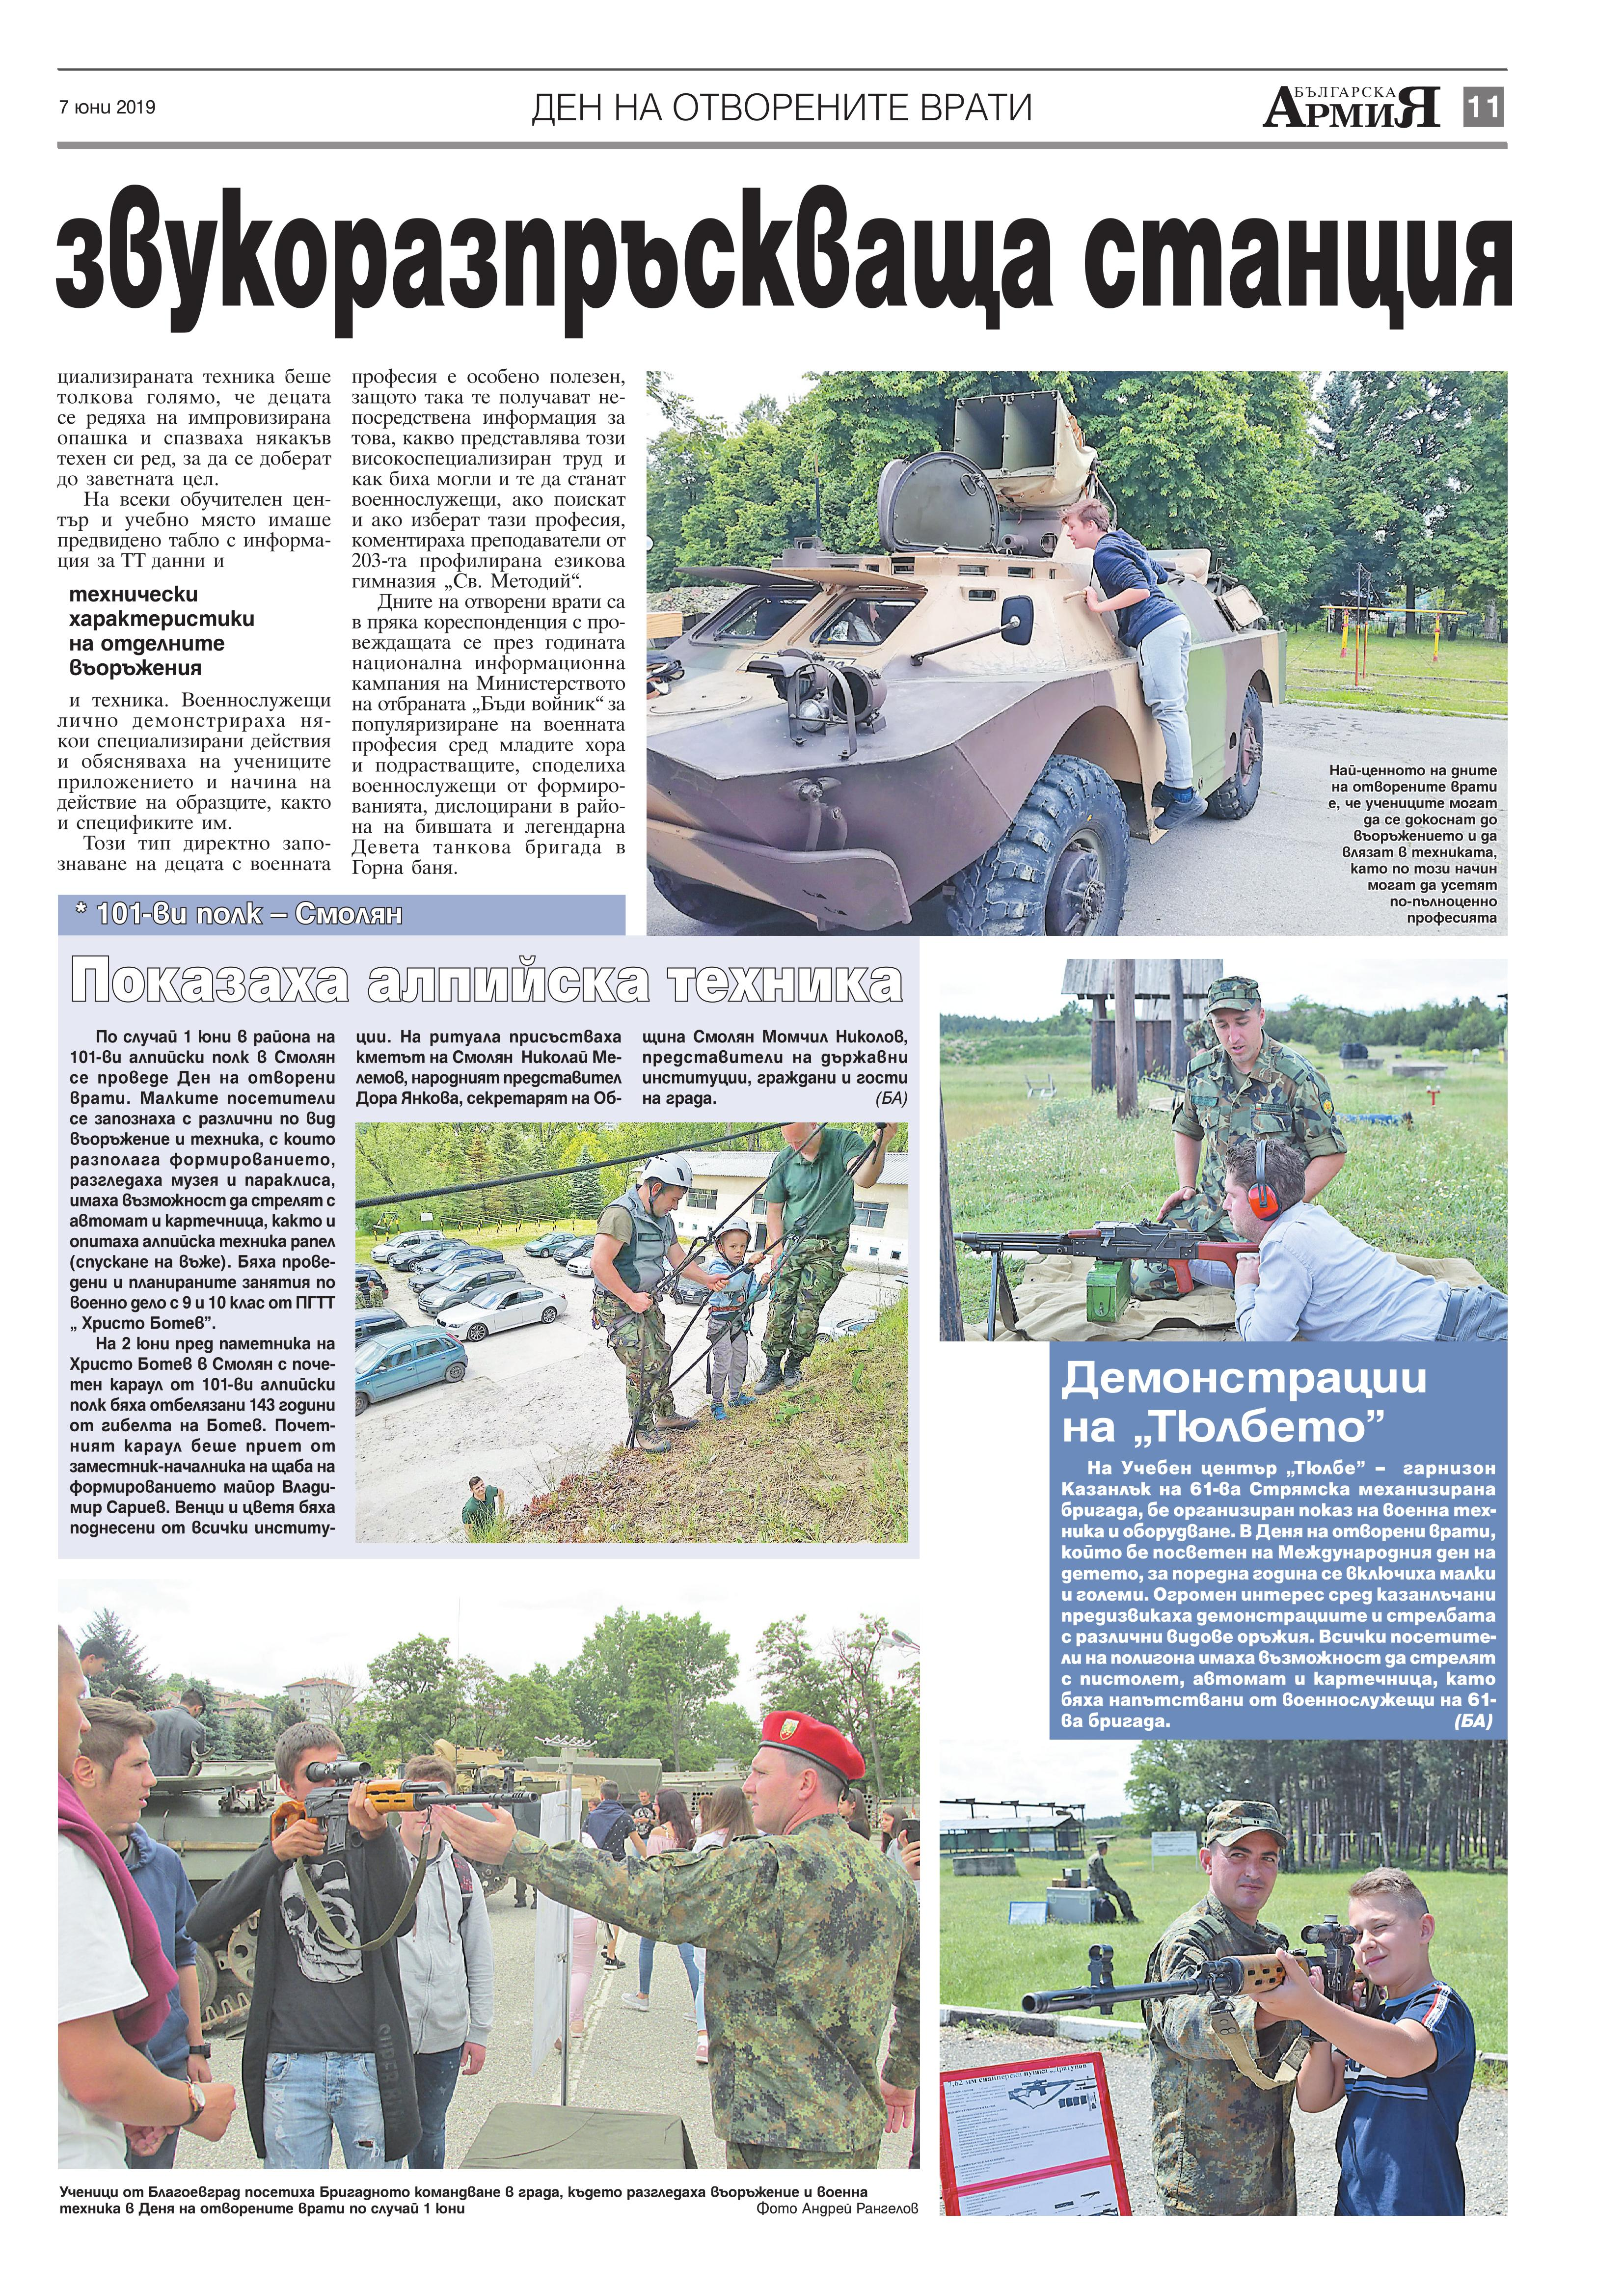 https://www.armymedia.bg/wp-content/uploads/2015/06/11.page1_-98.jpg